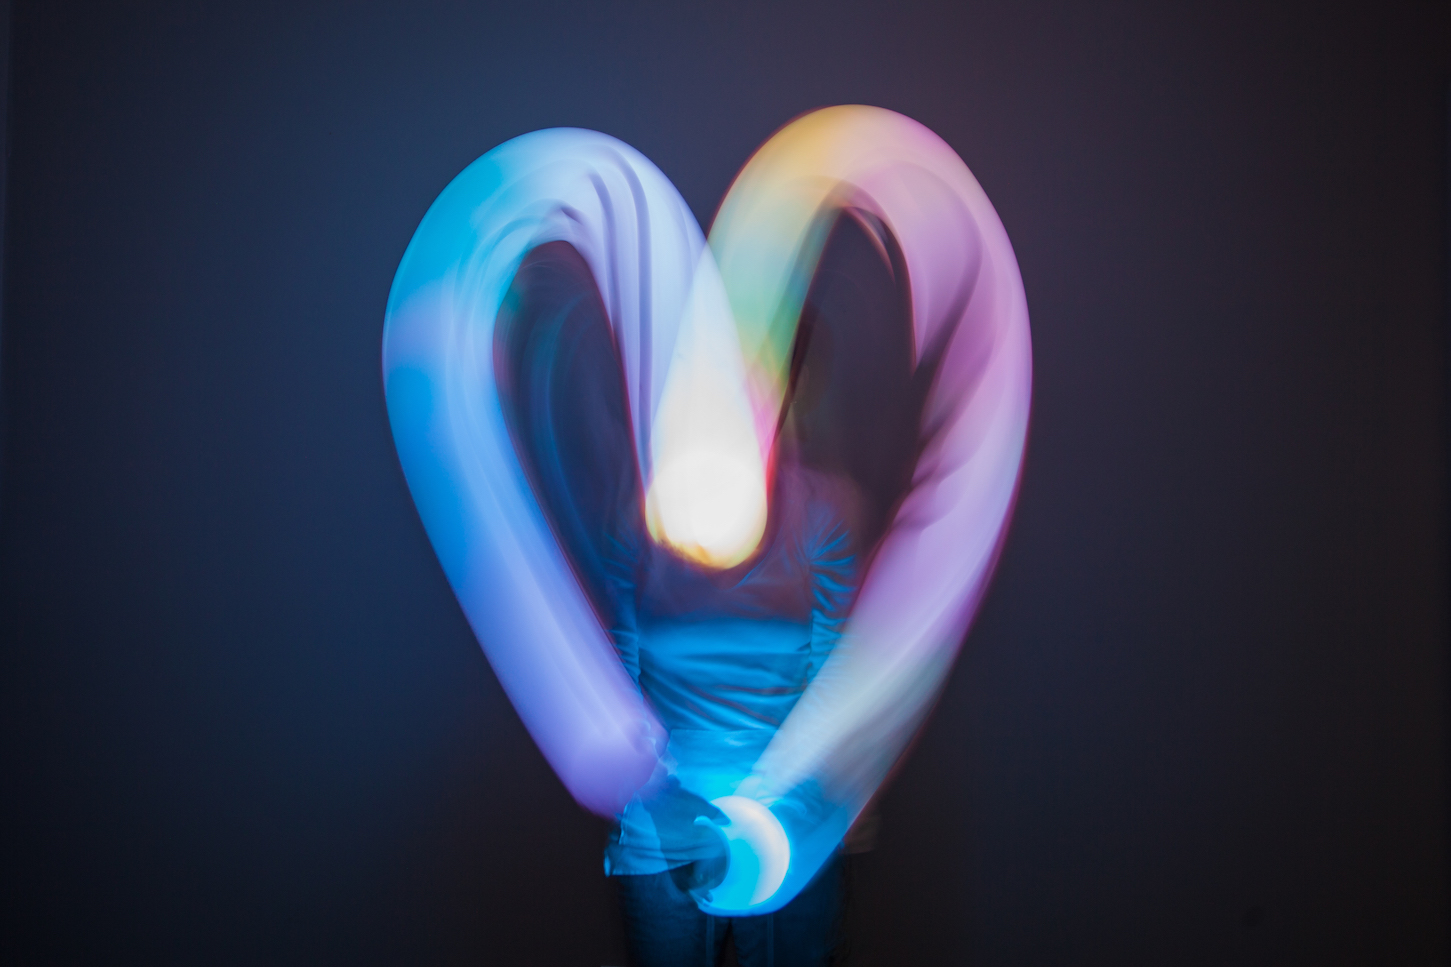 valentines-gifts-light-up-your-loved-ones-life